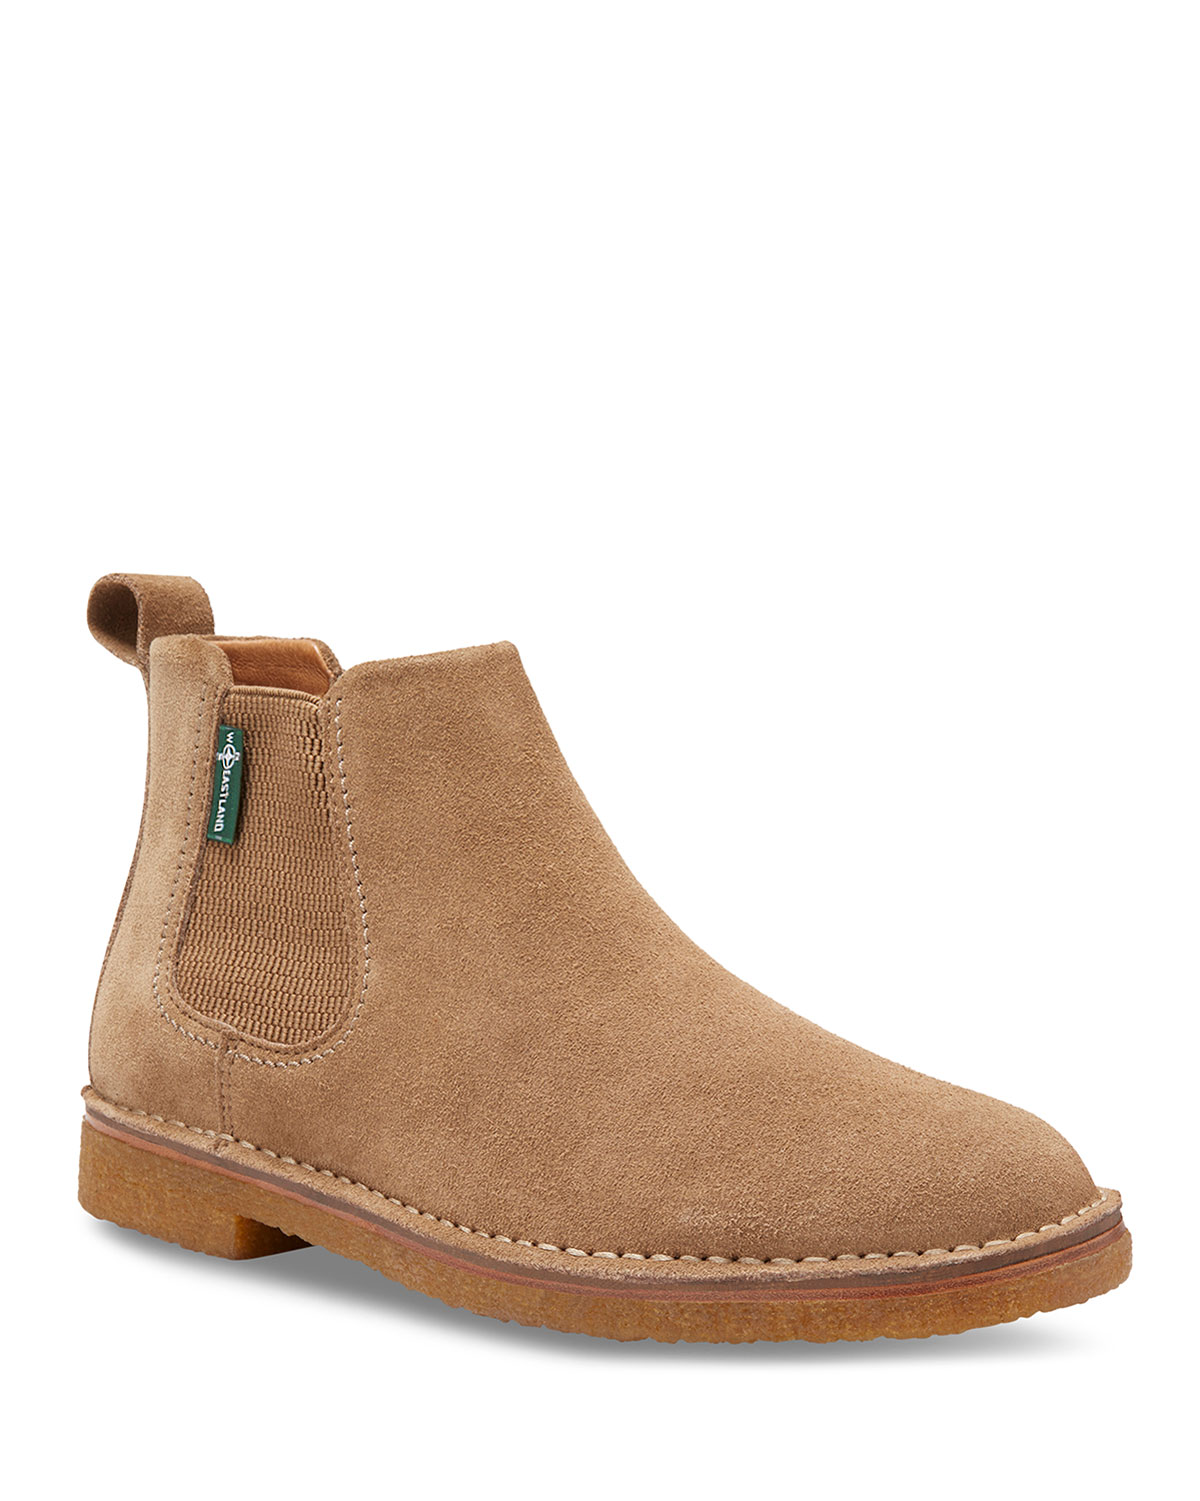 EASTLAND Men'S Edison 1955 Suede Chelsea Boots in Light Brown